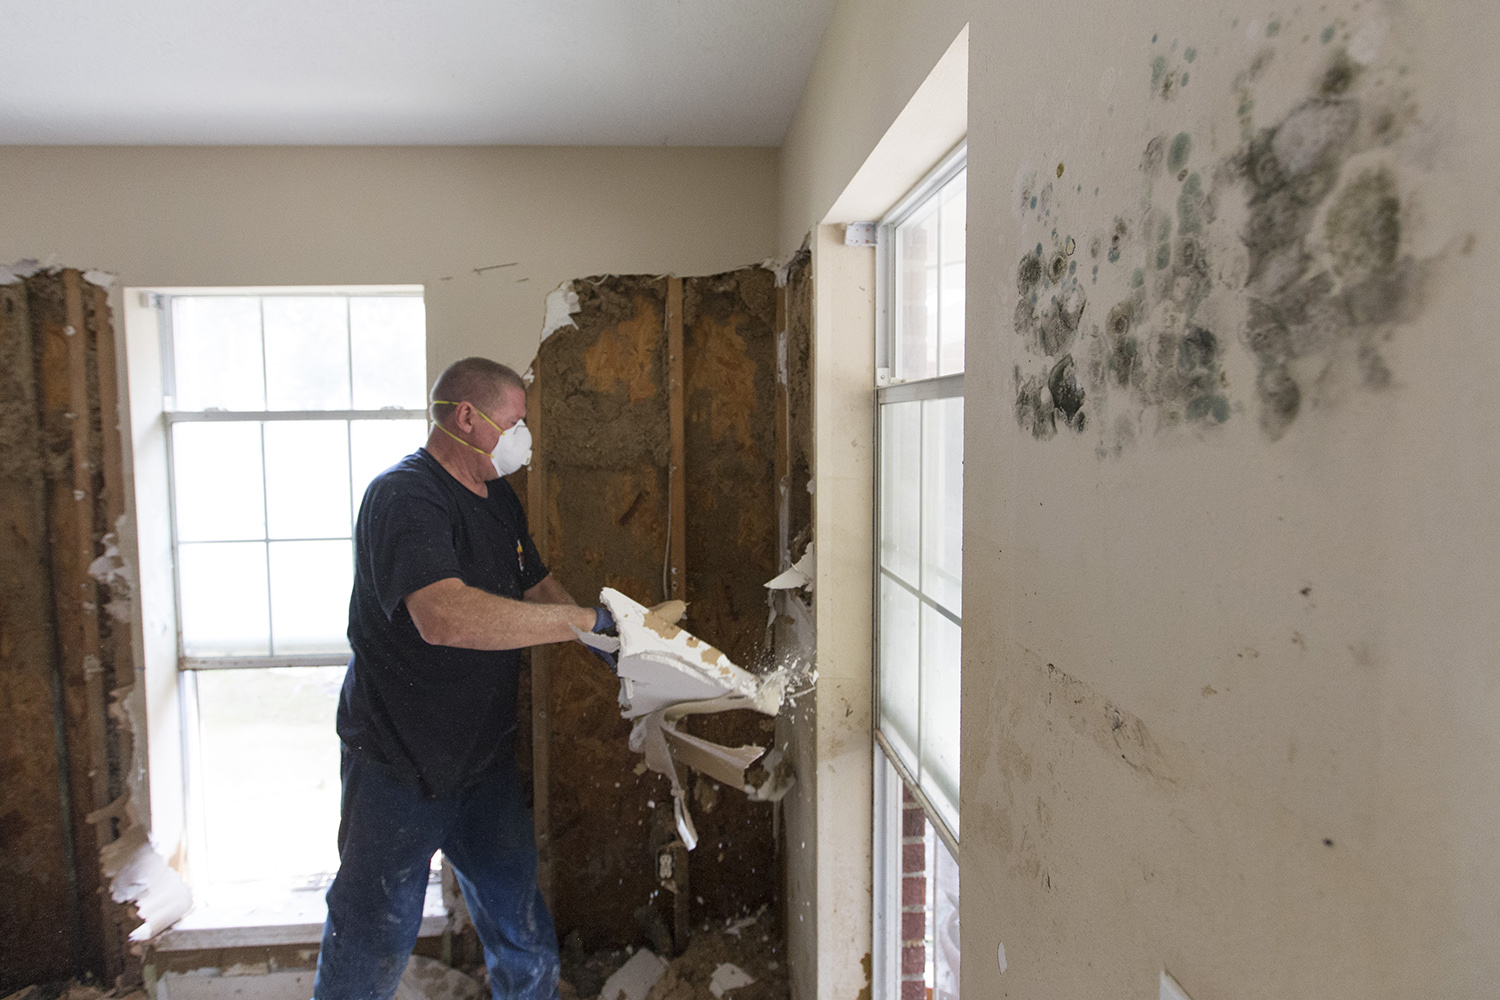 Robert McLaughlin removing sheetrock from a flooded home with mold growing on the walls in Rose City.